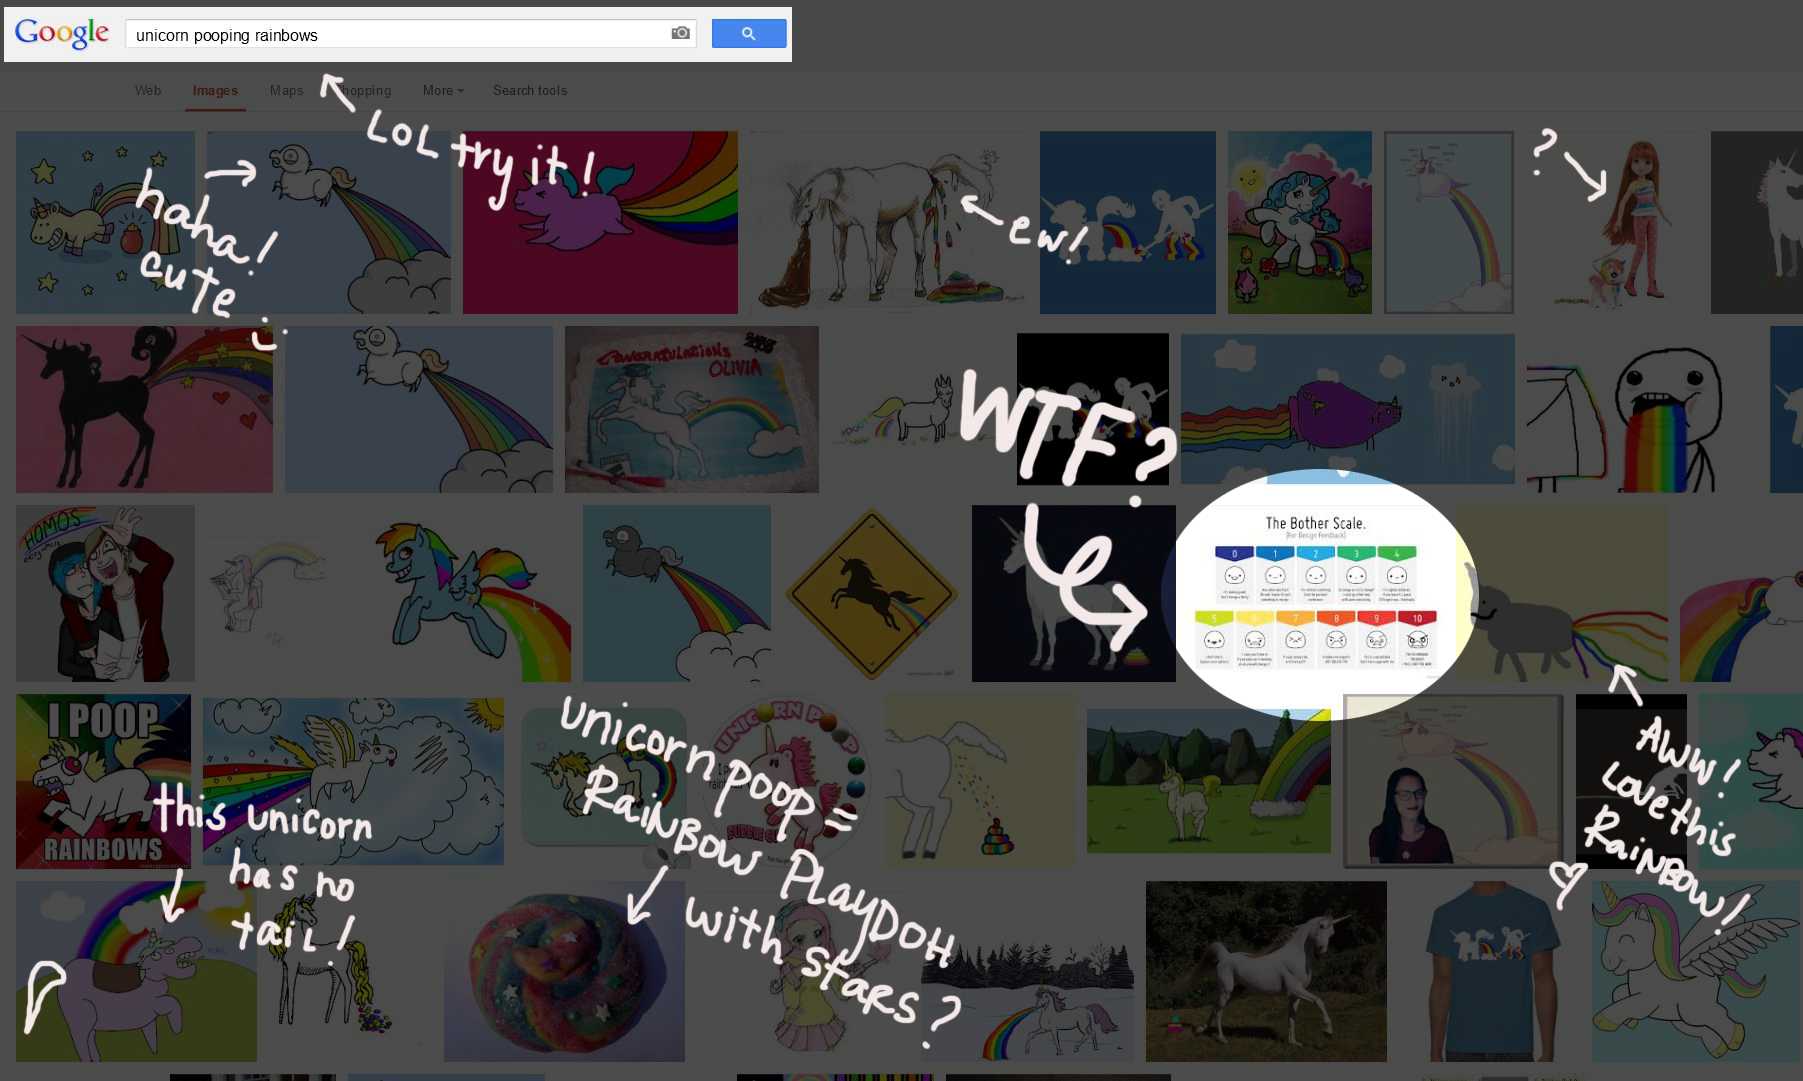 Google Image Search for Unicorn Pooping Rainbows